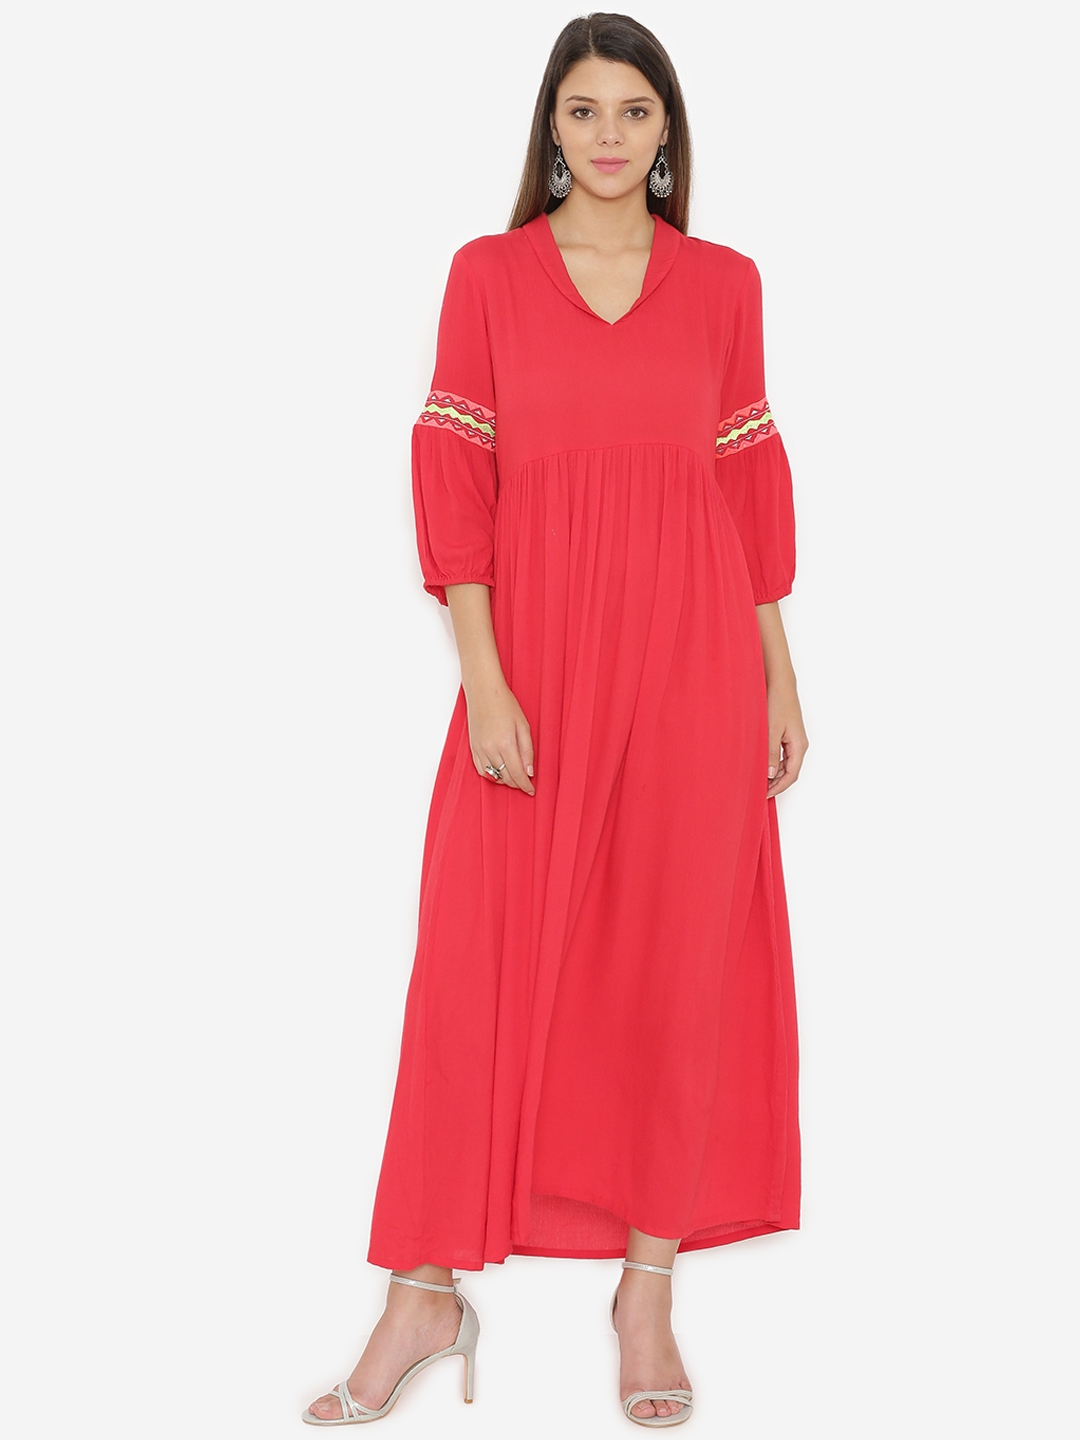 bc2d12ad63a Buy Alom Women Red Embroidered Maxi Dress - Dresses for Women ...